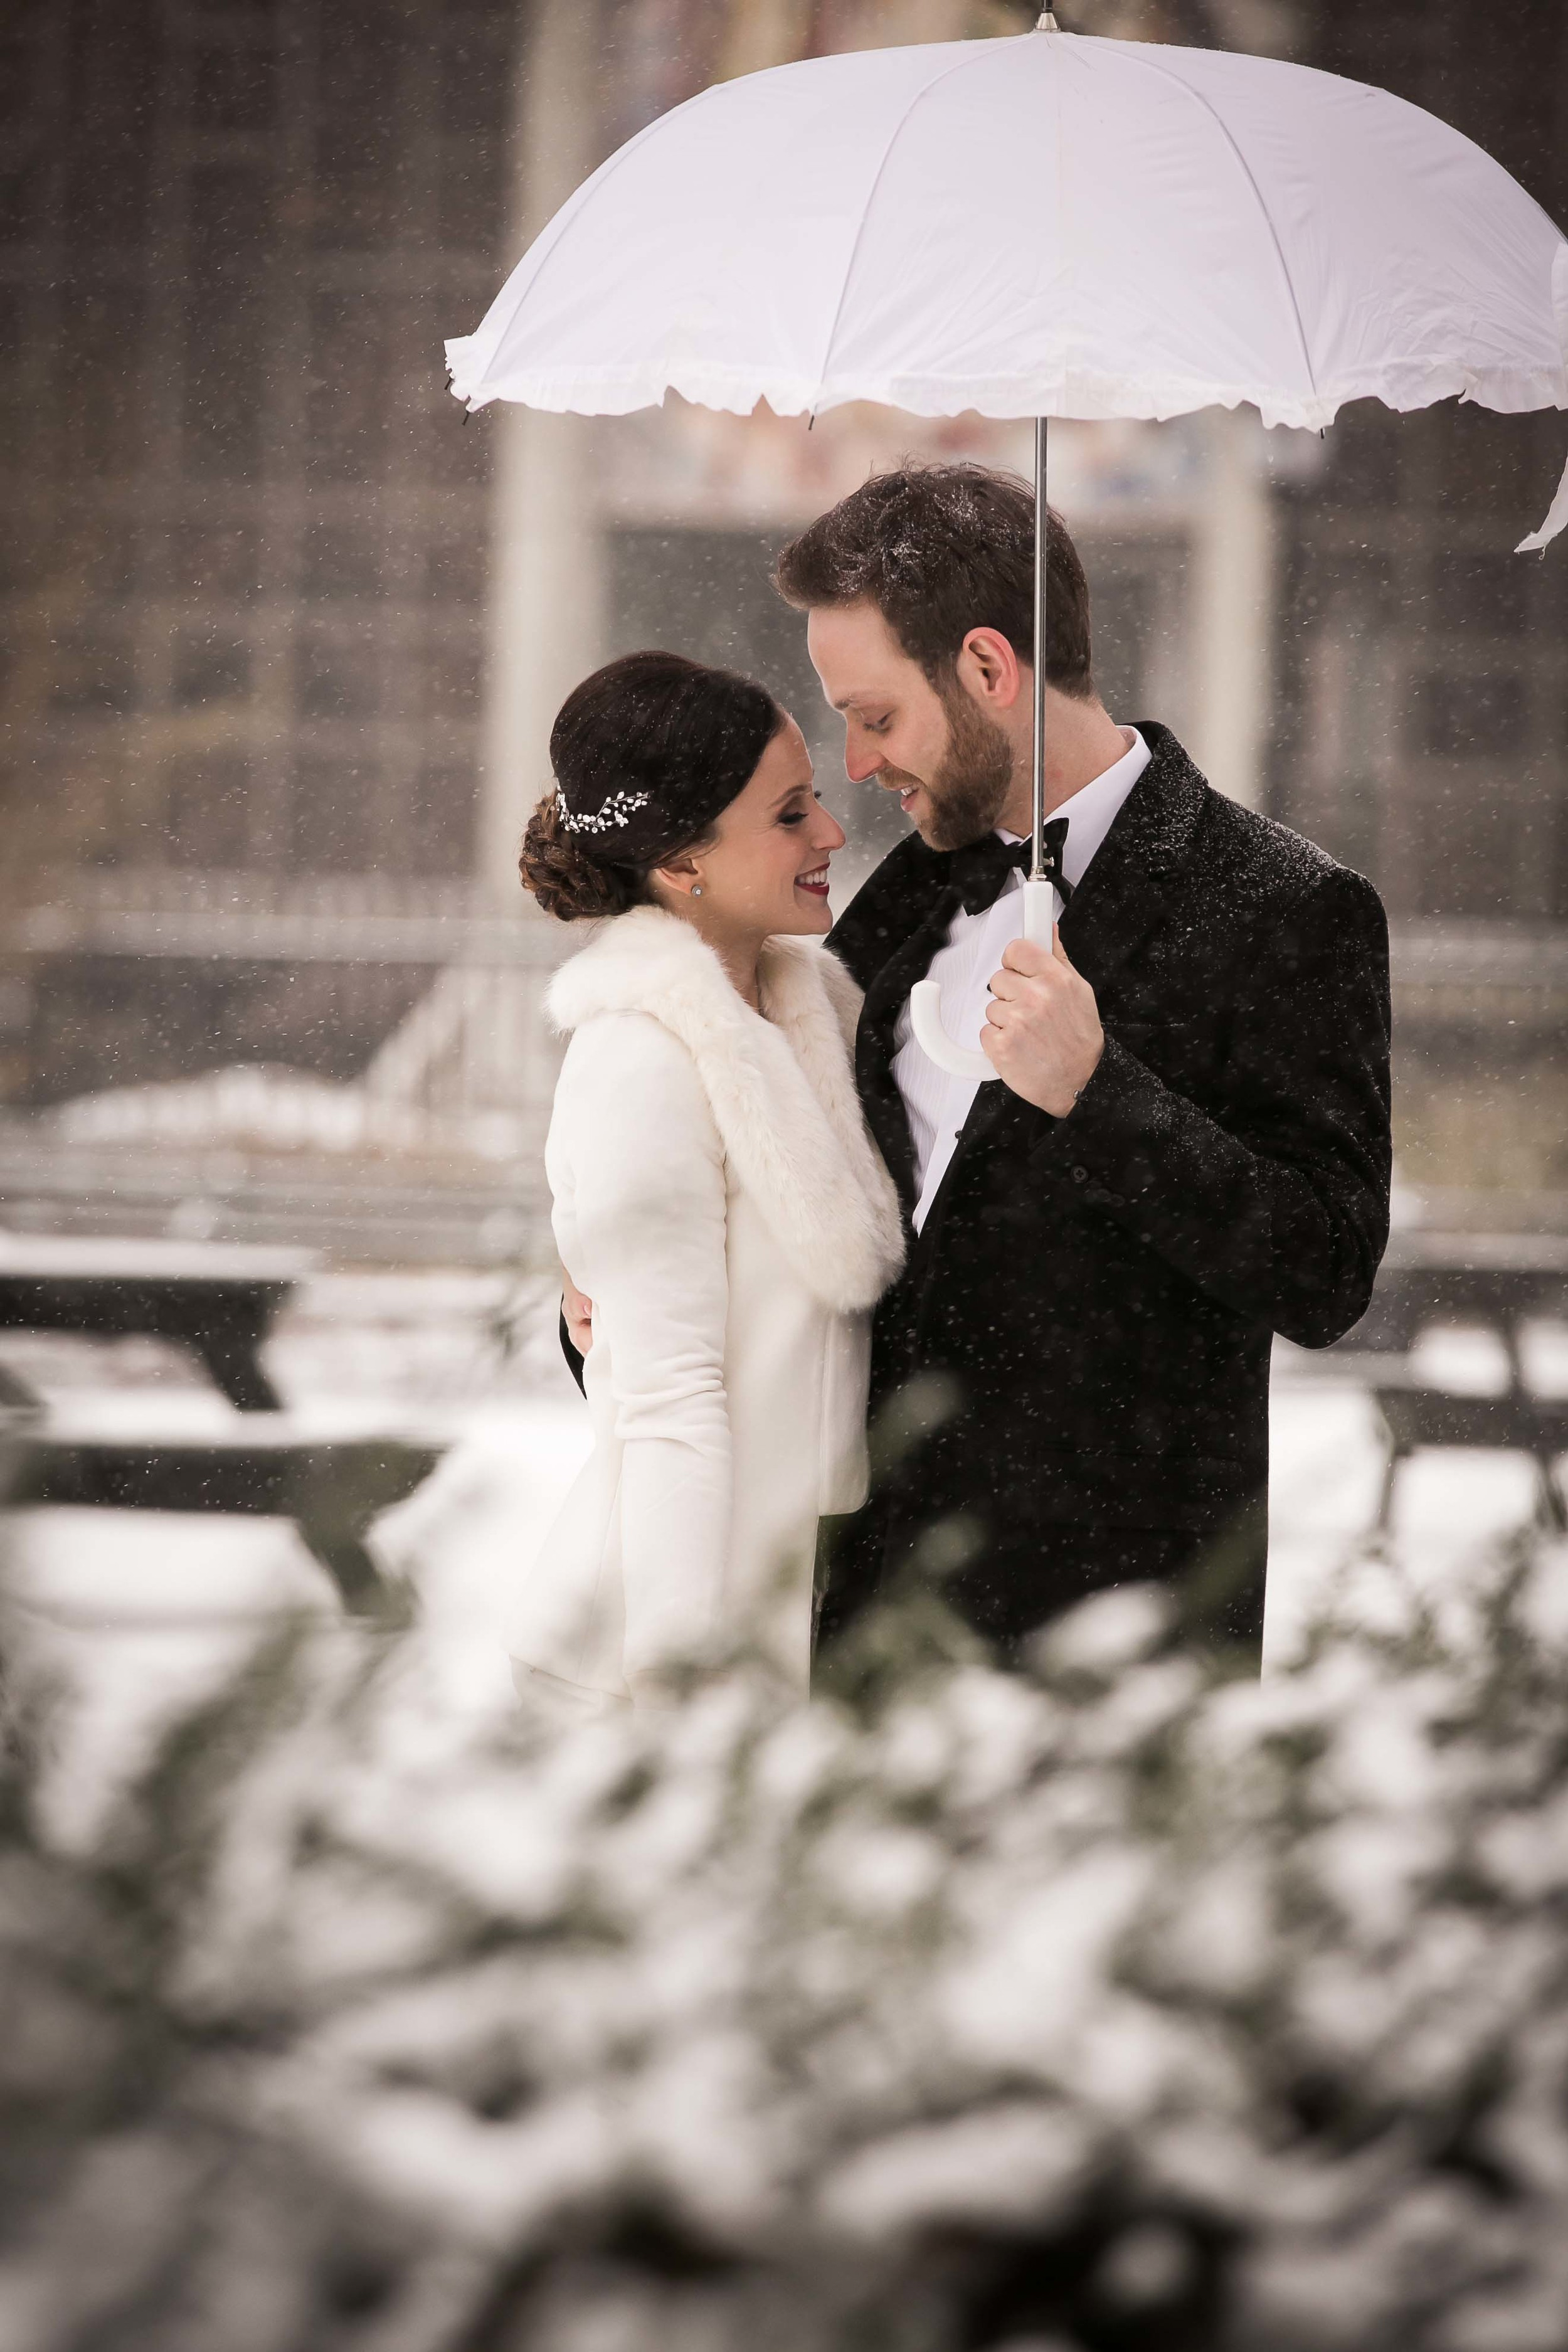 winter-wedding-snow-couple-umbrella-bride-groom